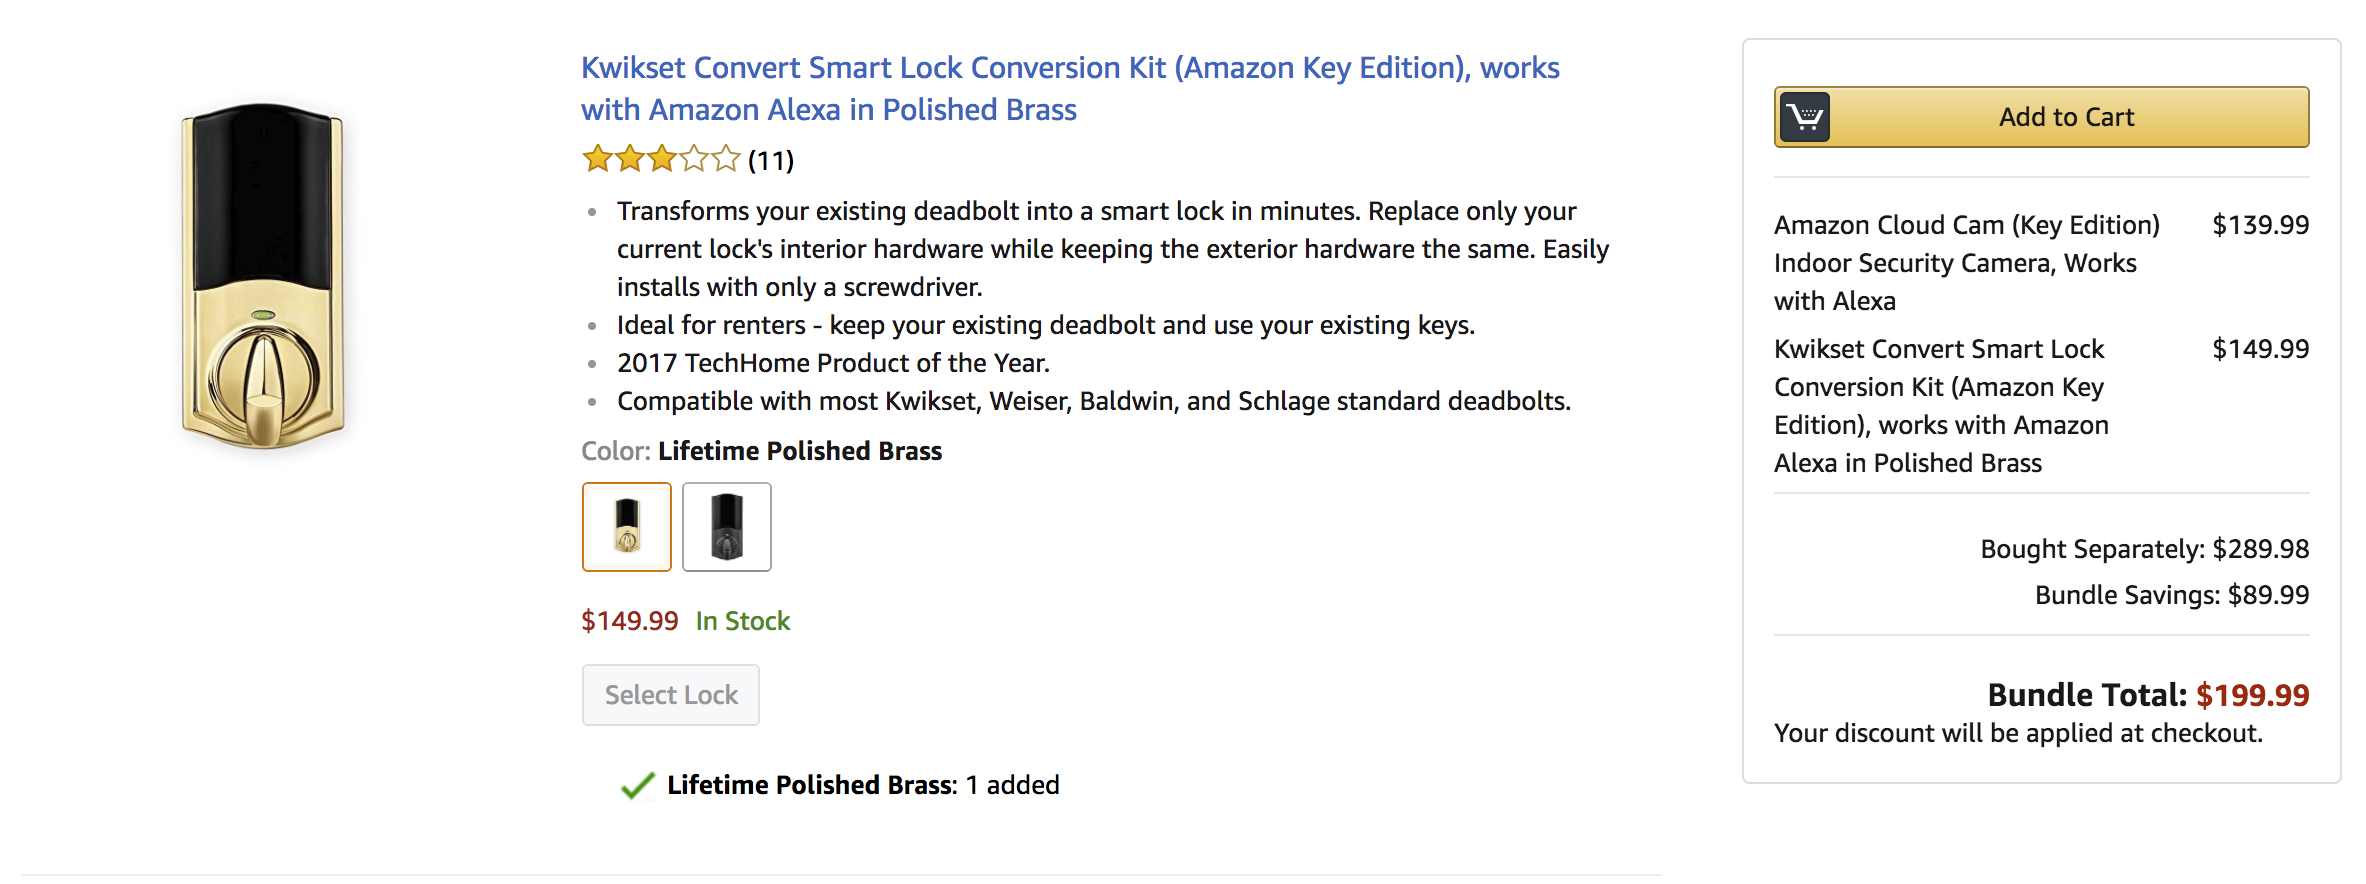 The Est Bundle Features A 139 99 Cloud Cam And 149 Kwikset Convert Smart Lock This Usually Costs 249 Together Offers